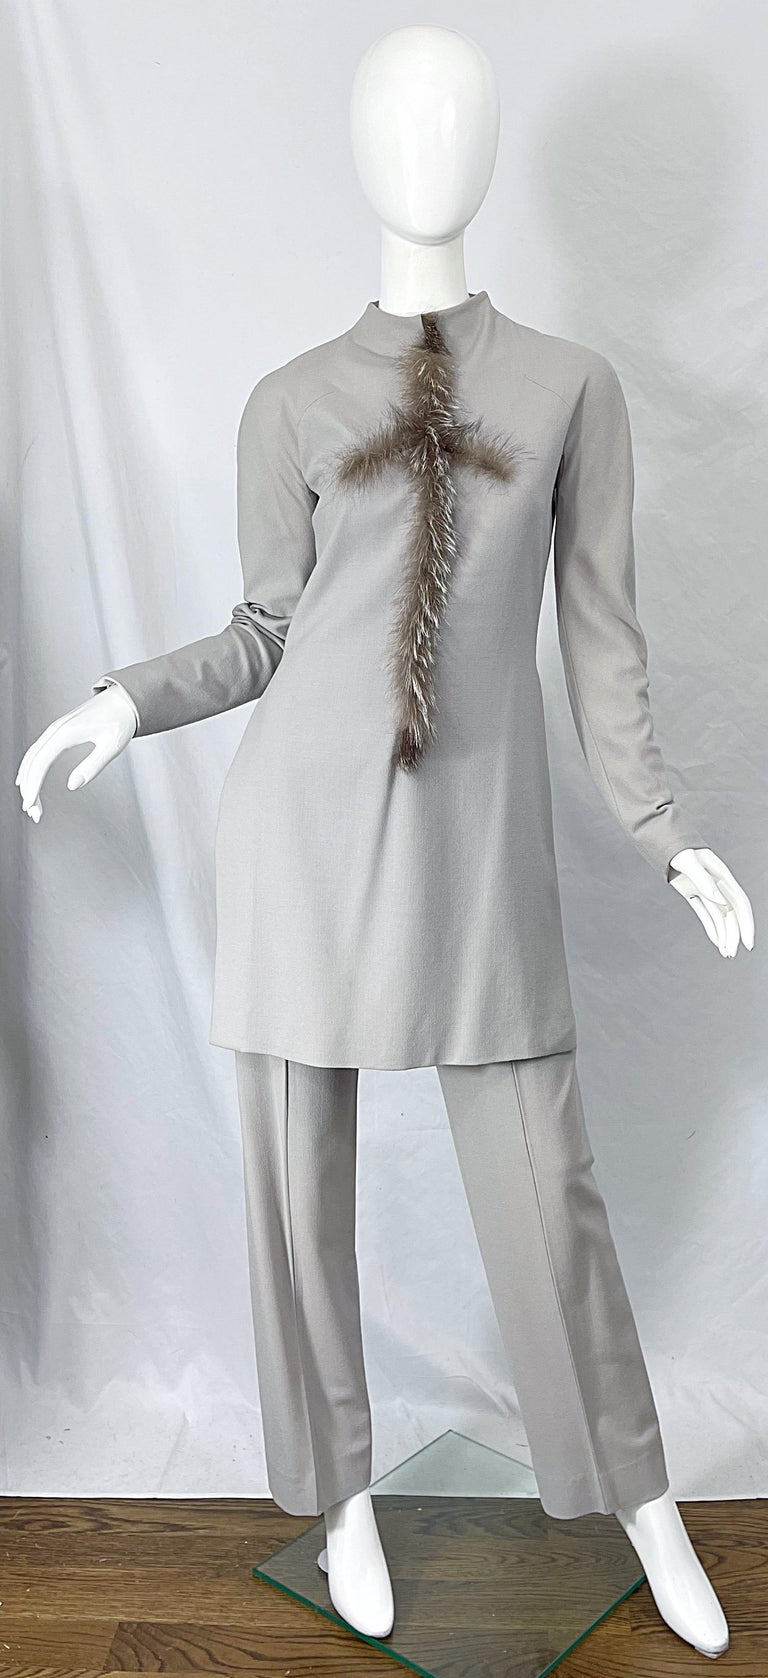 Givenchy Couture Alexander McQueen F/W 2003 Grey Runway Tunic + Slim Pants For Sale 13